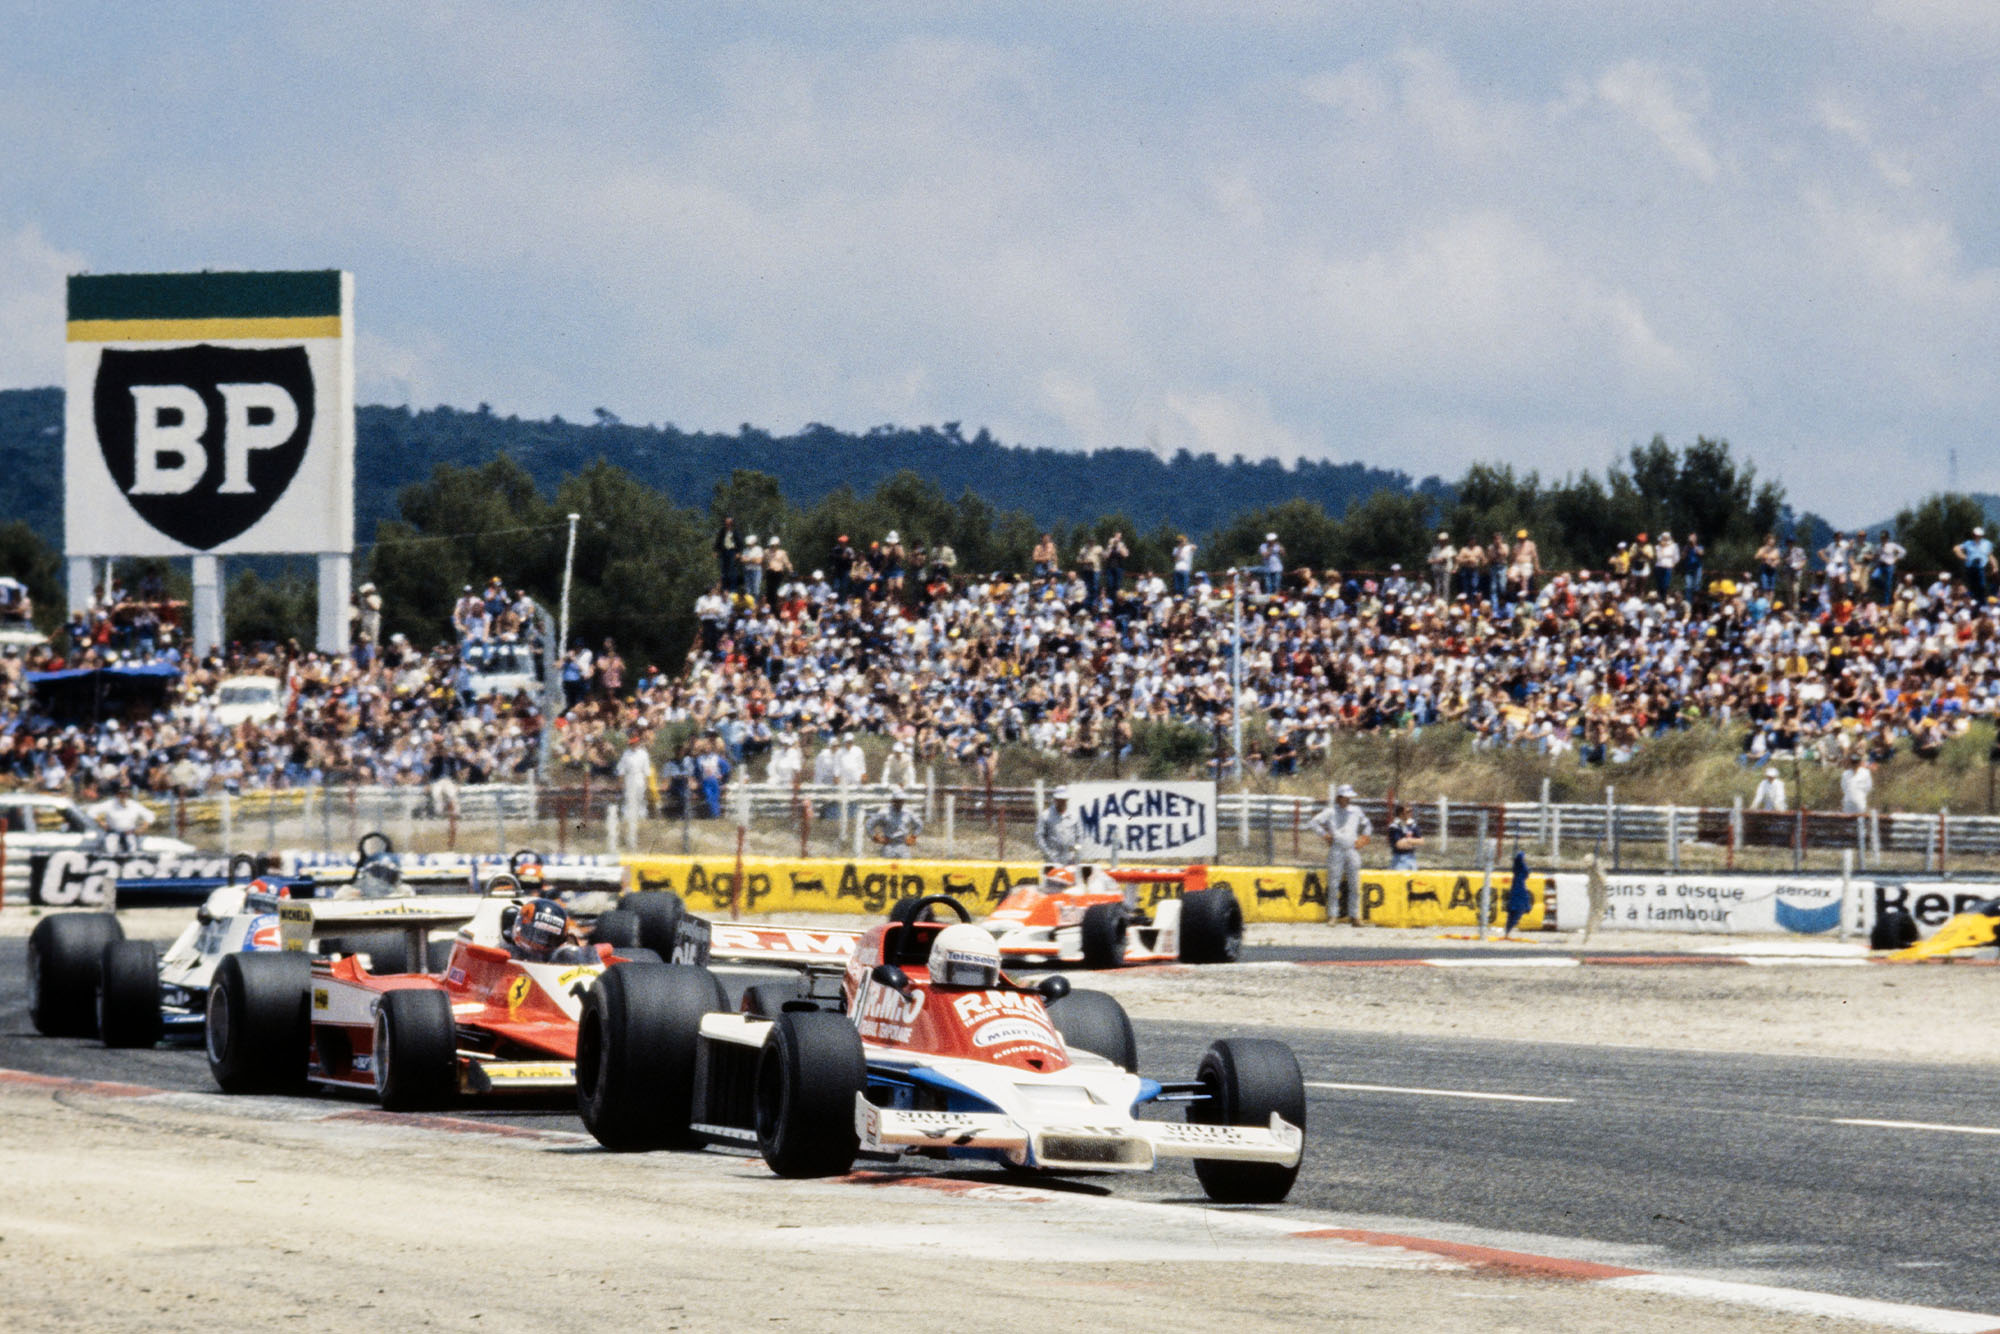 Rene Arnoux driving for McLaren at the 1978 French Grand Prix, Paul Ricard.